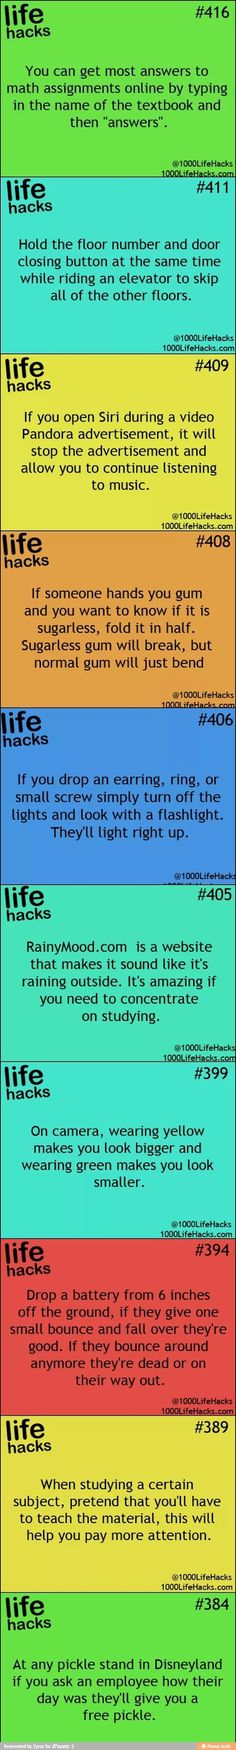 Life hacks *you're grrrrr